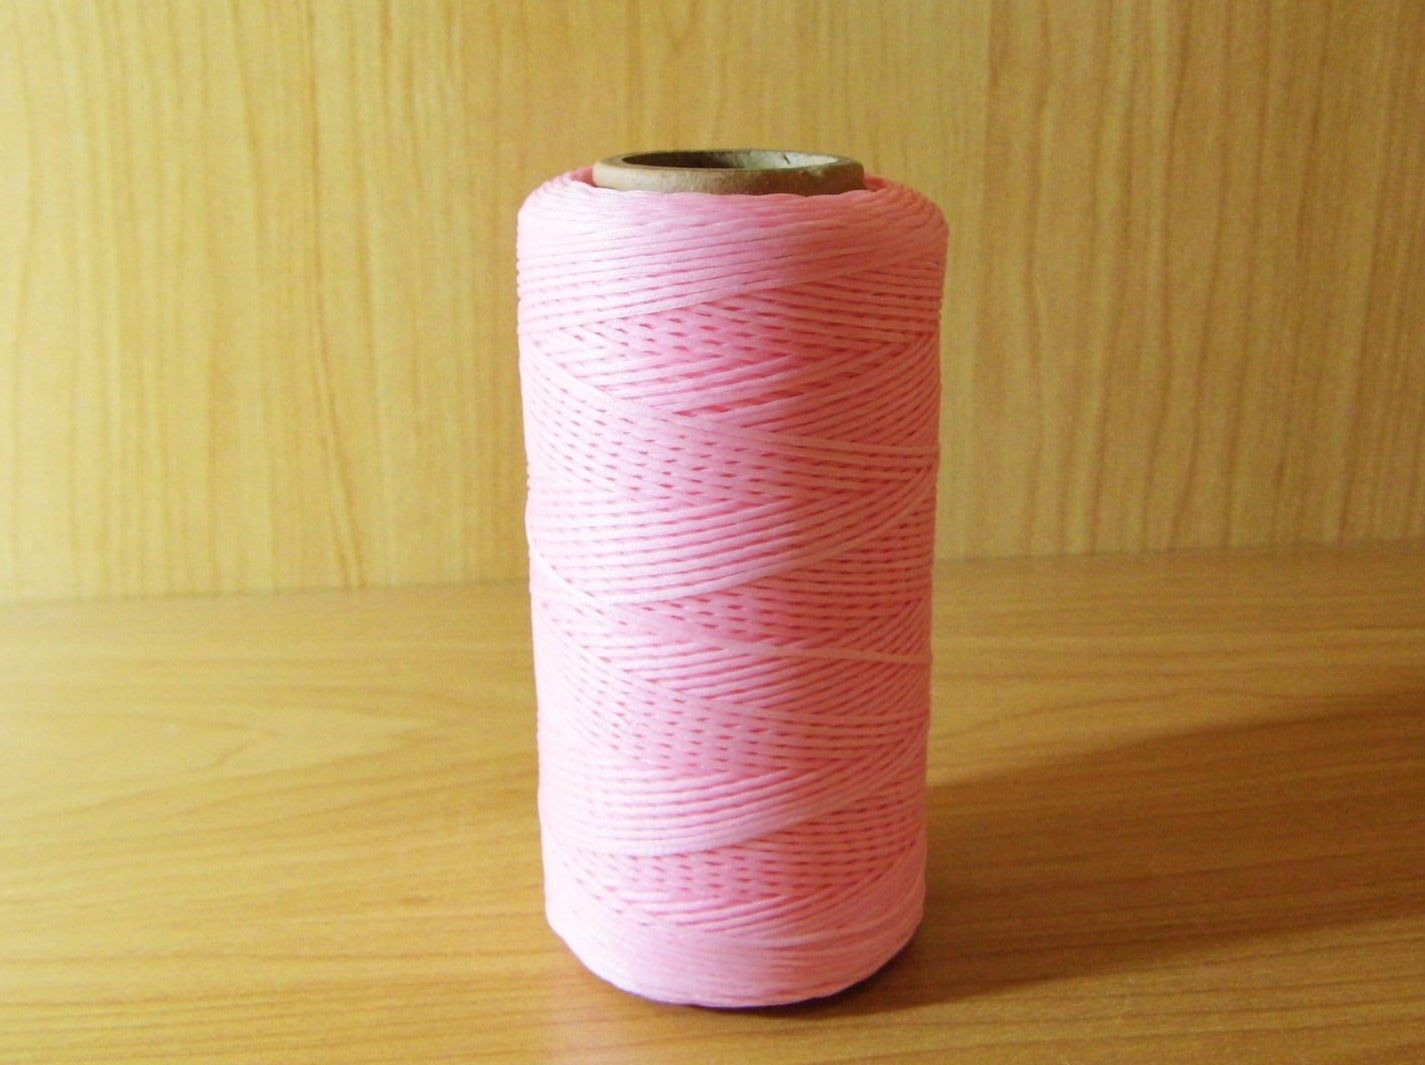 Waxed Cord Pink 260m - Earth's Treasures